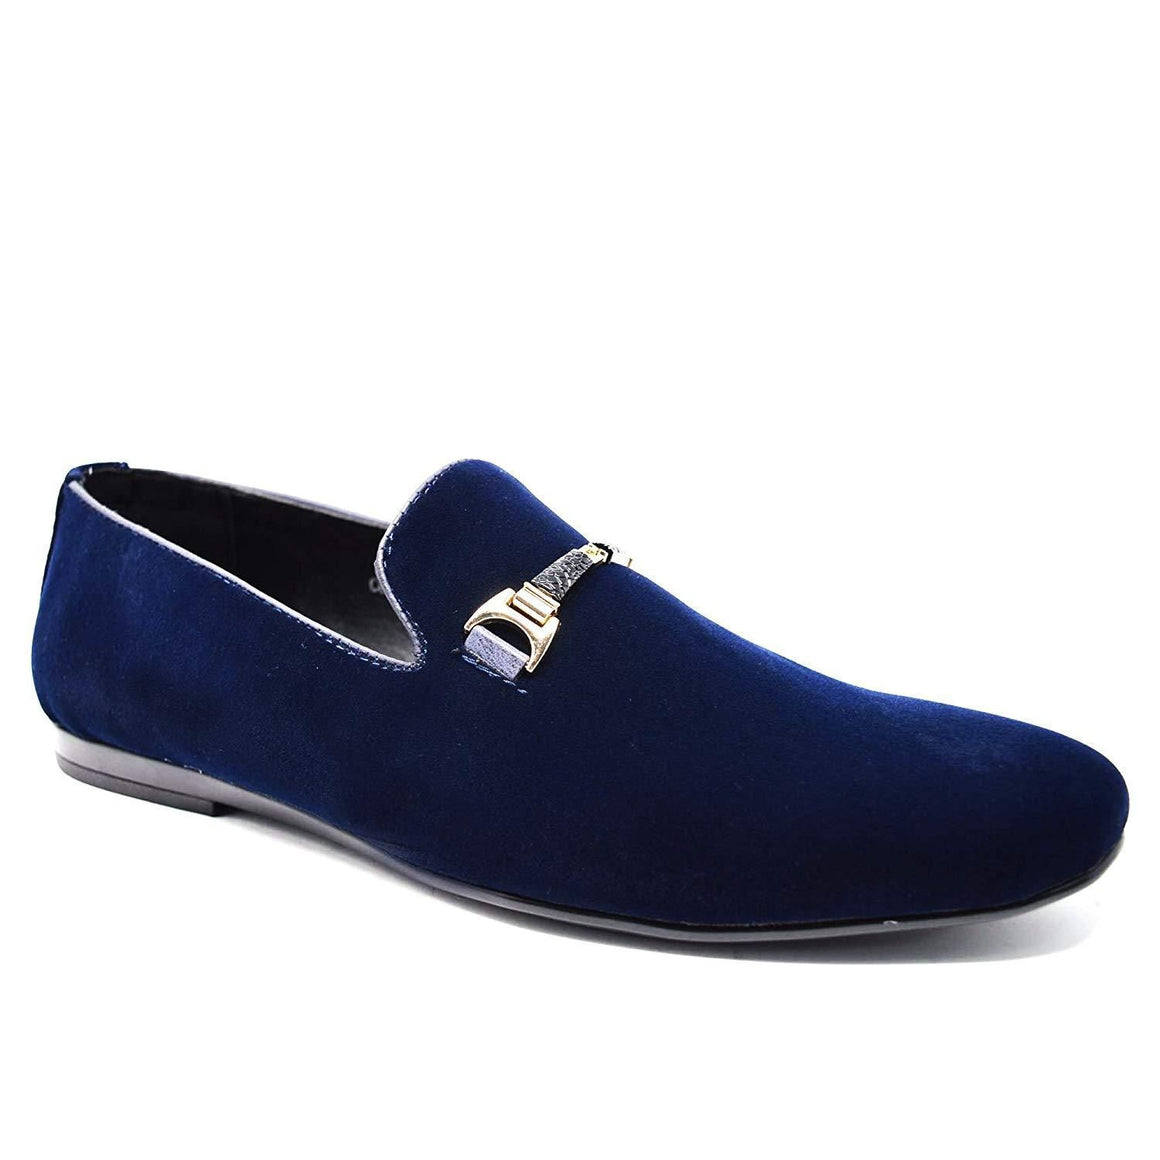 Mens Leather Buckle Loafers Slip On Driving Moccasins Flat Shoes